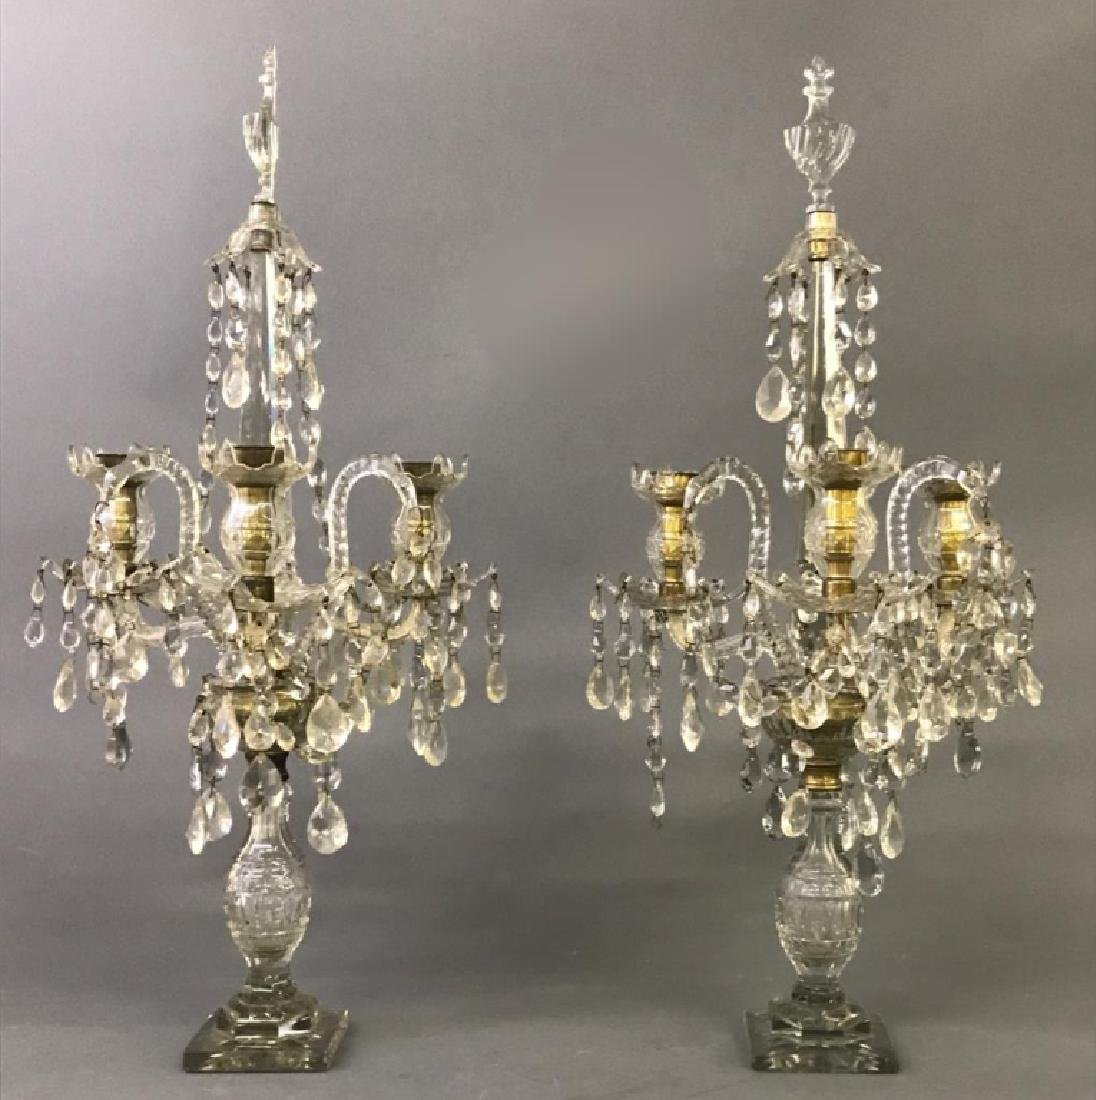 Pair of Crystal Candelabra